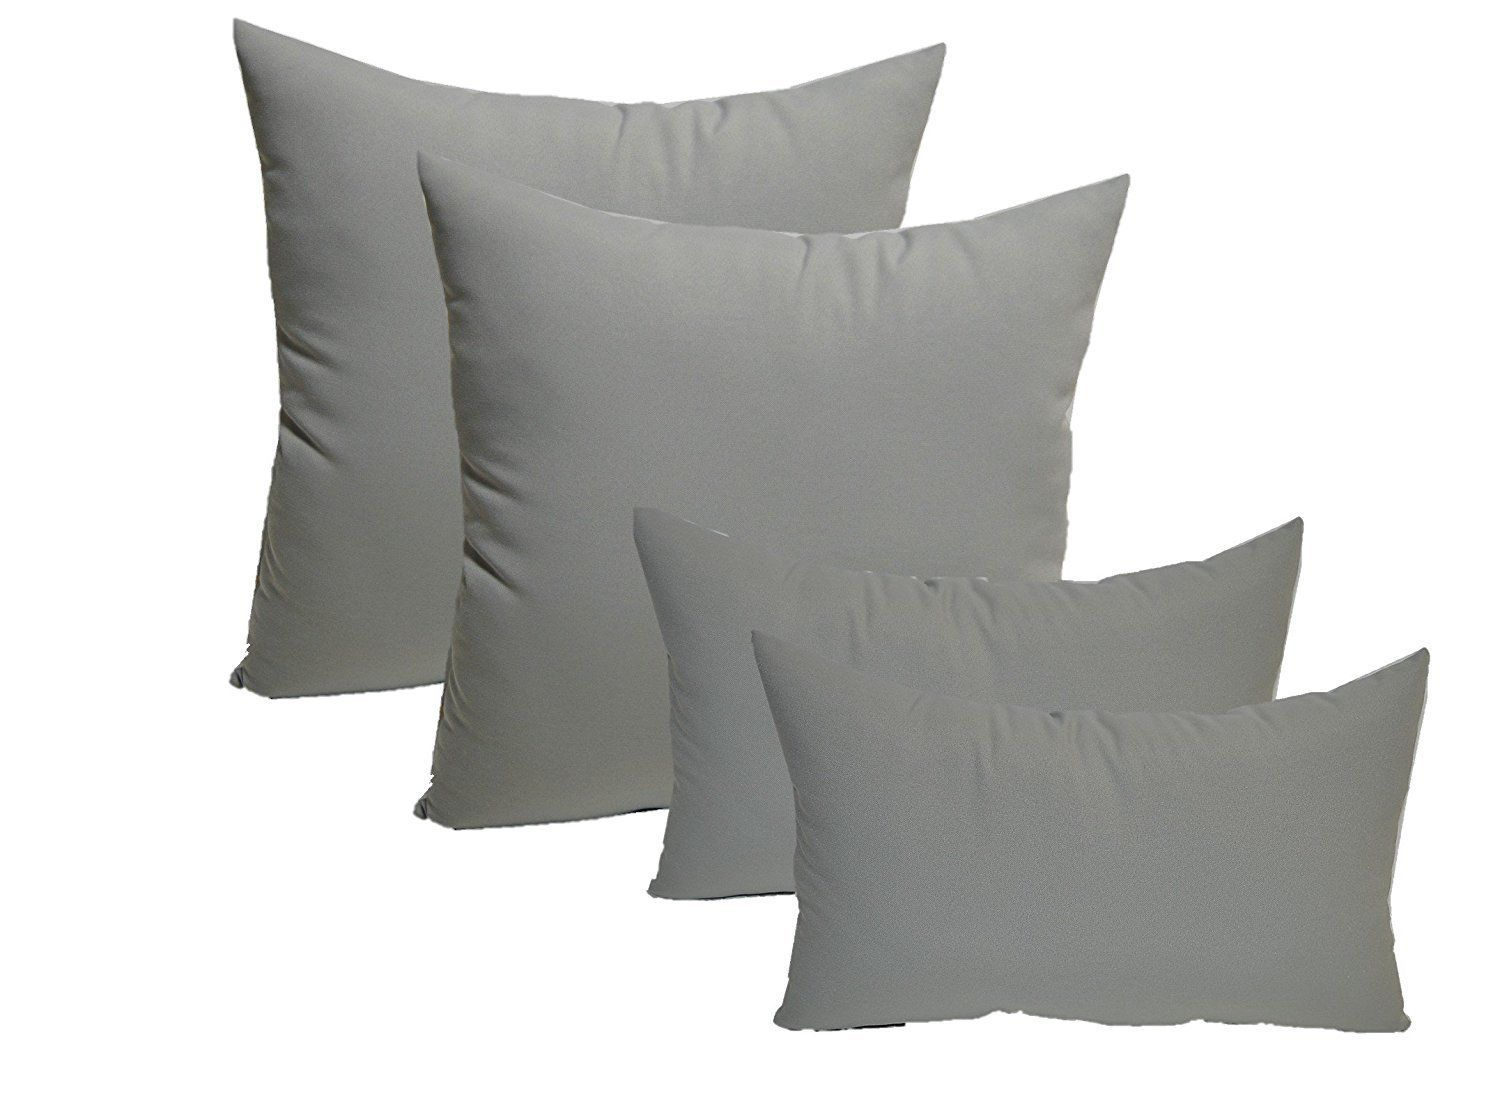 Set Of 4 Indoor Outdoor Pillows 20 Square Throw Pillows And 11 X 19 Rectangle Lumbar Decorativ Indoor Outdoor Pillows Pillows Decorative Throw Pillows